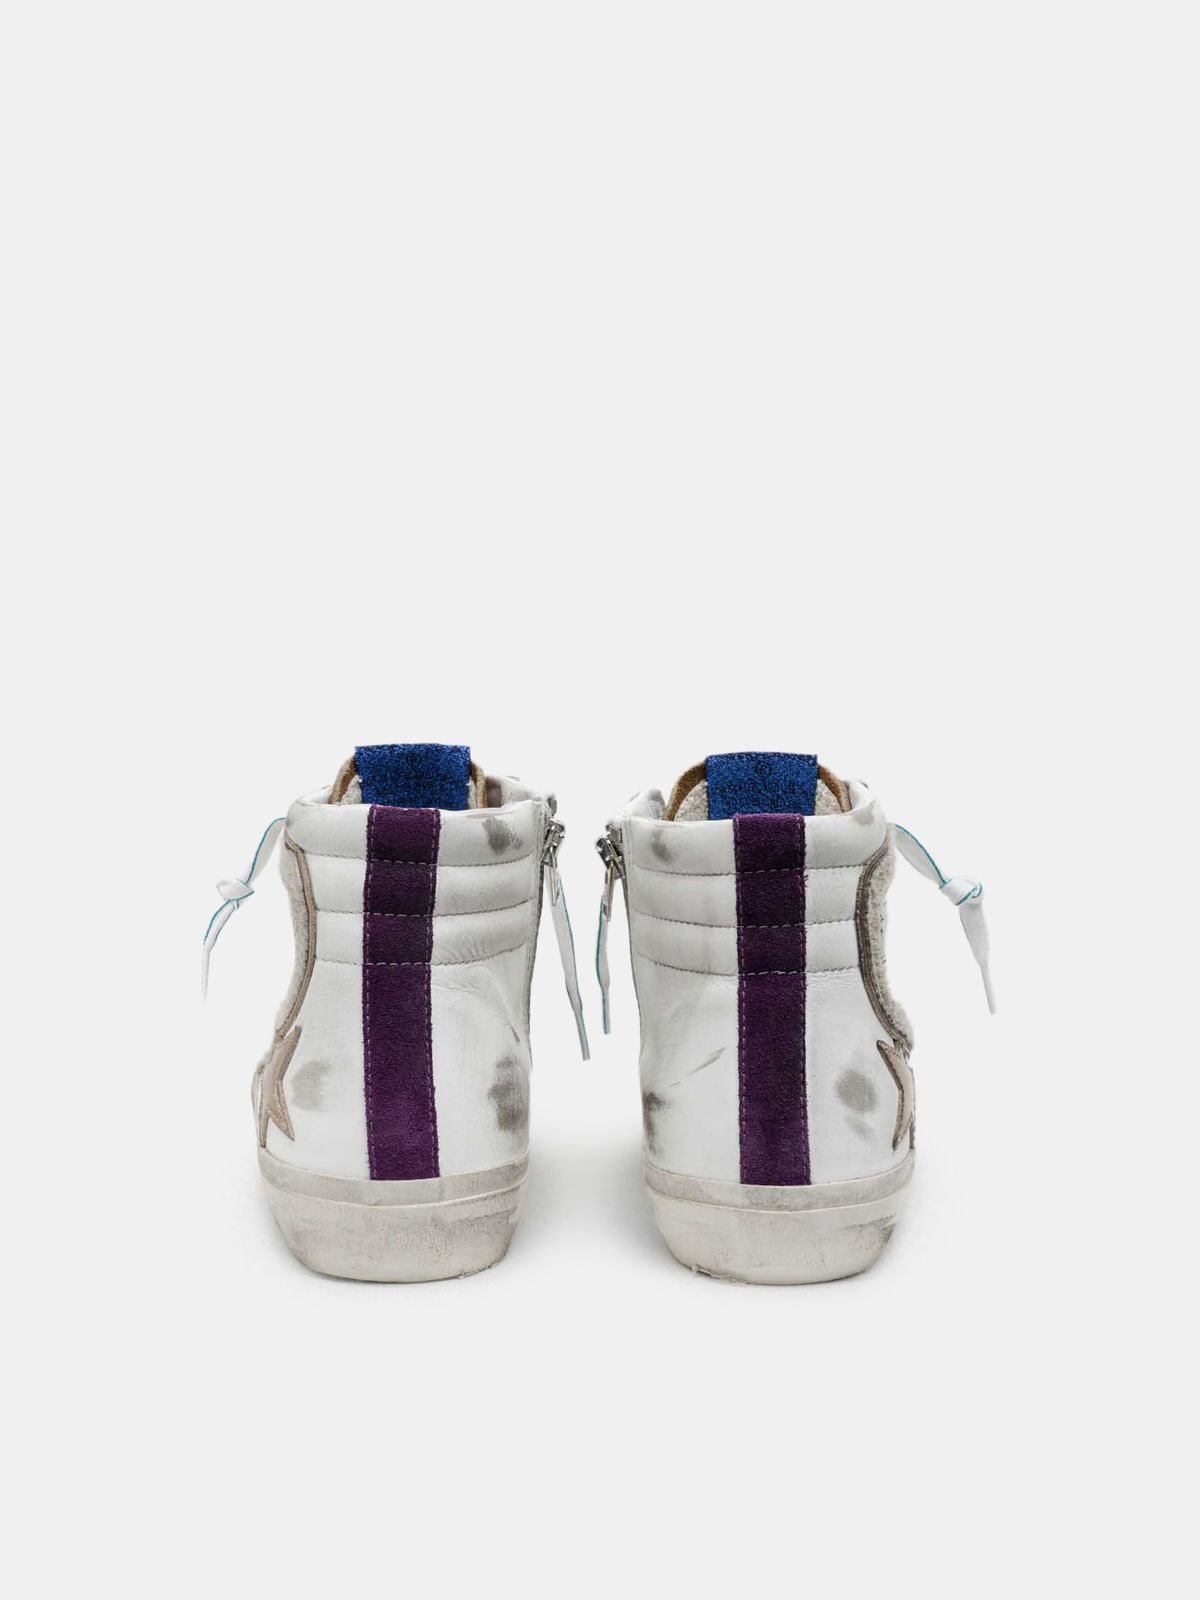 Golden Goose - Slide sneakers with metallic star and pony skin details in